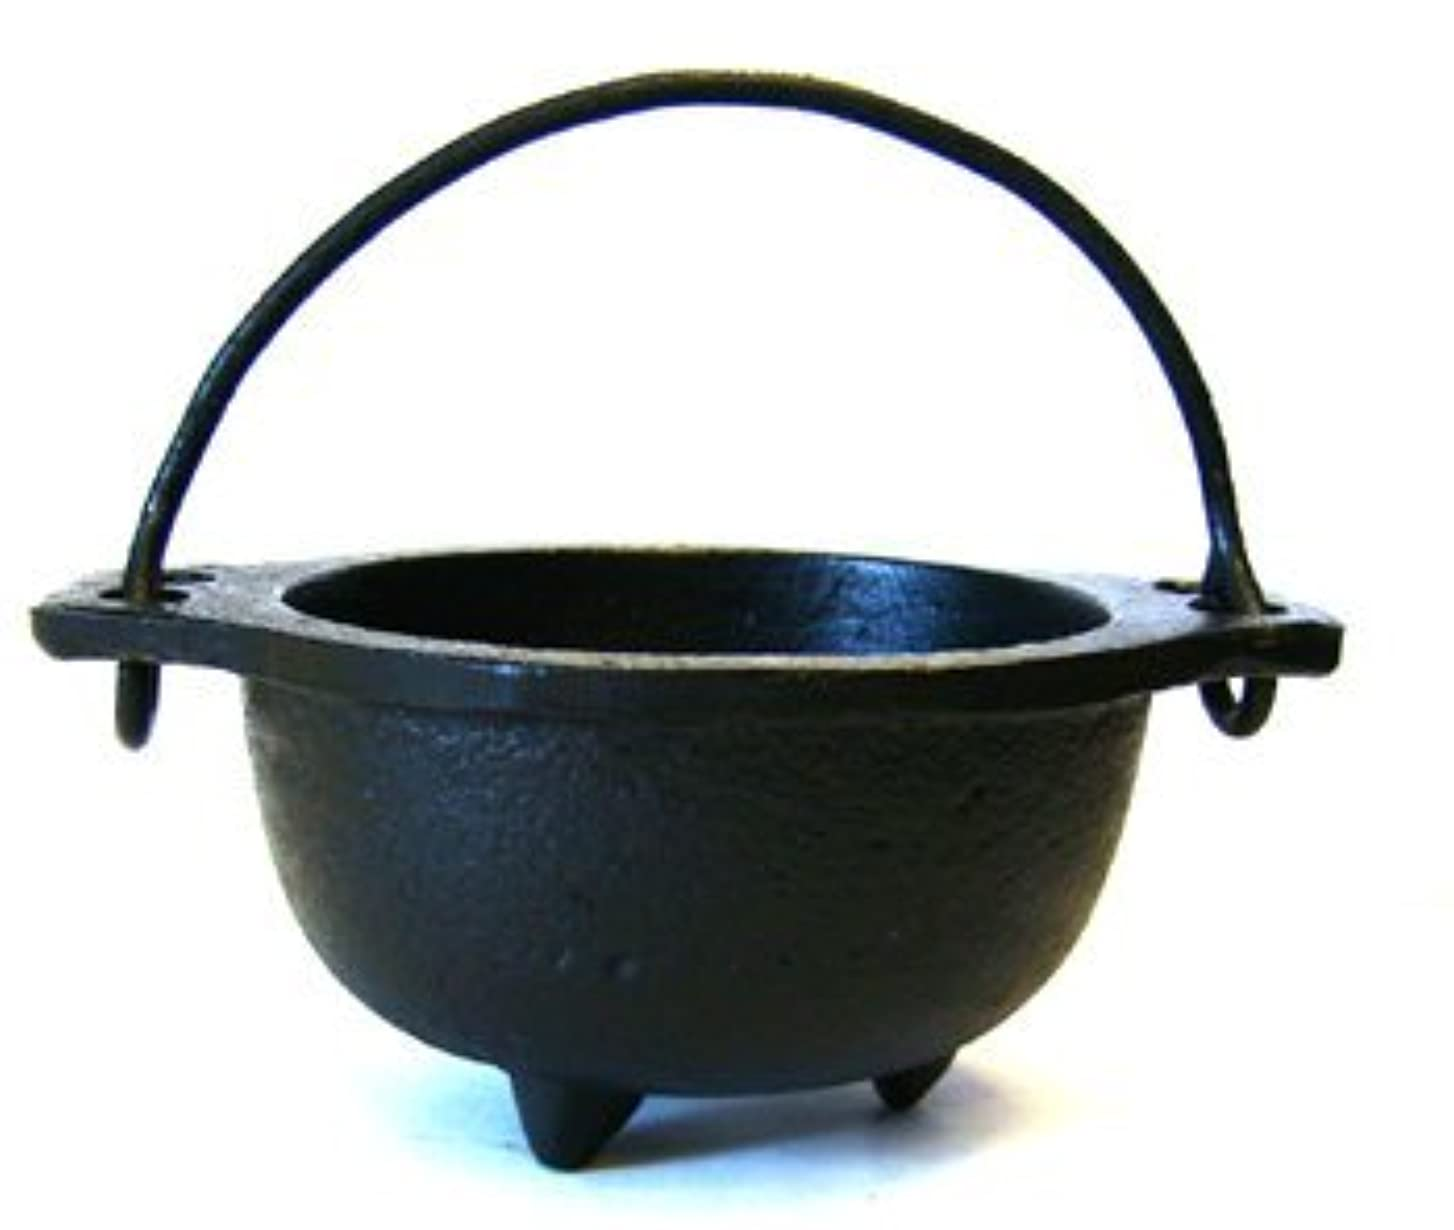 賄賂ホラーマーチャンダイザー(6.4cm Diameter) - Cast Iron Cauldron w/handle, ideal for smudging, incense burning, ritual purpose, decoration...